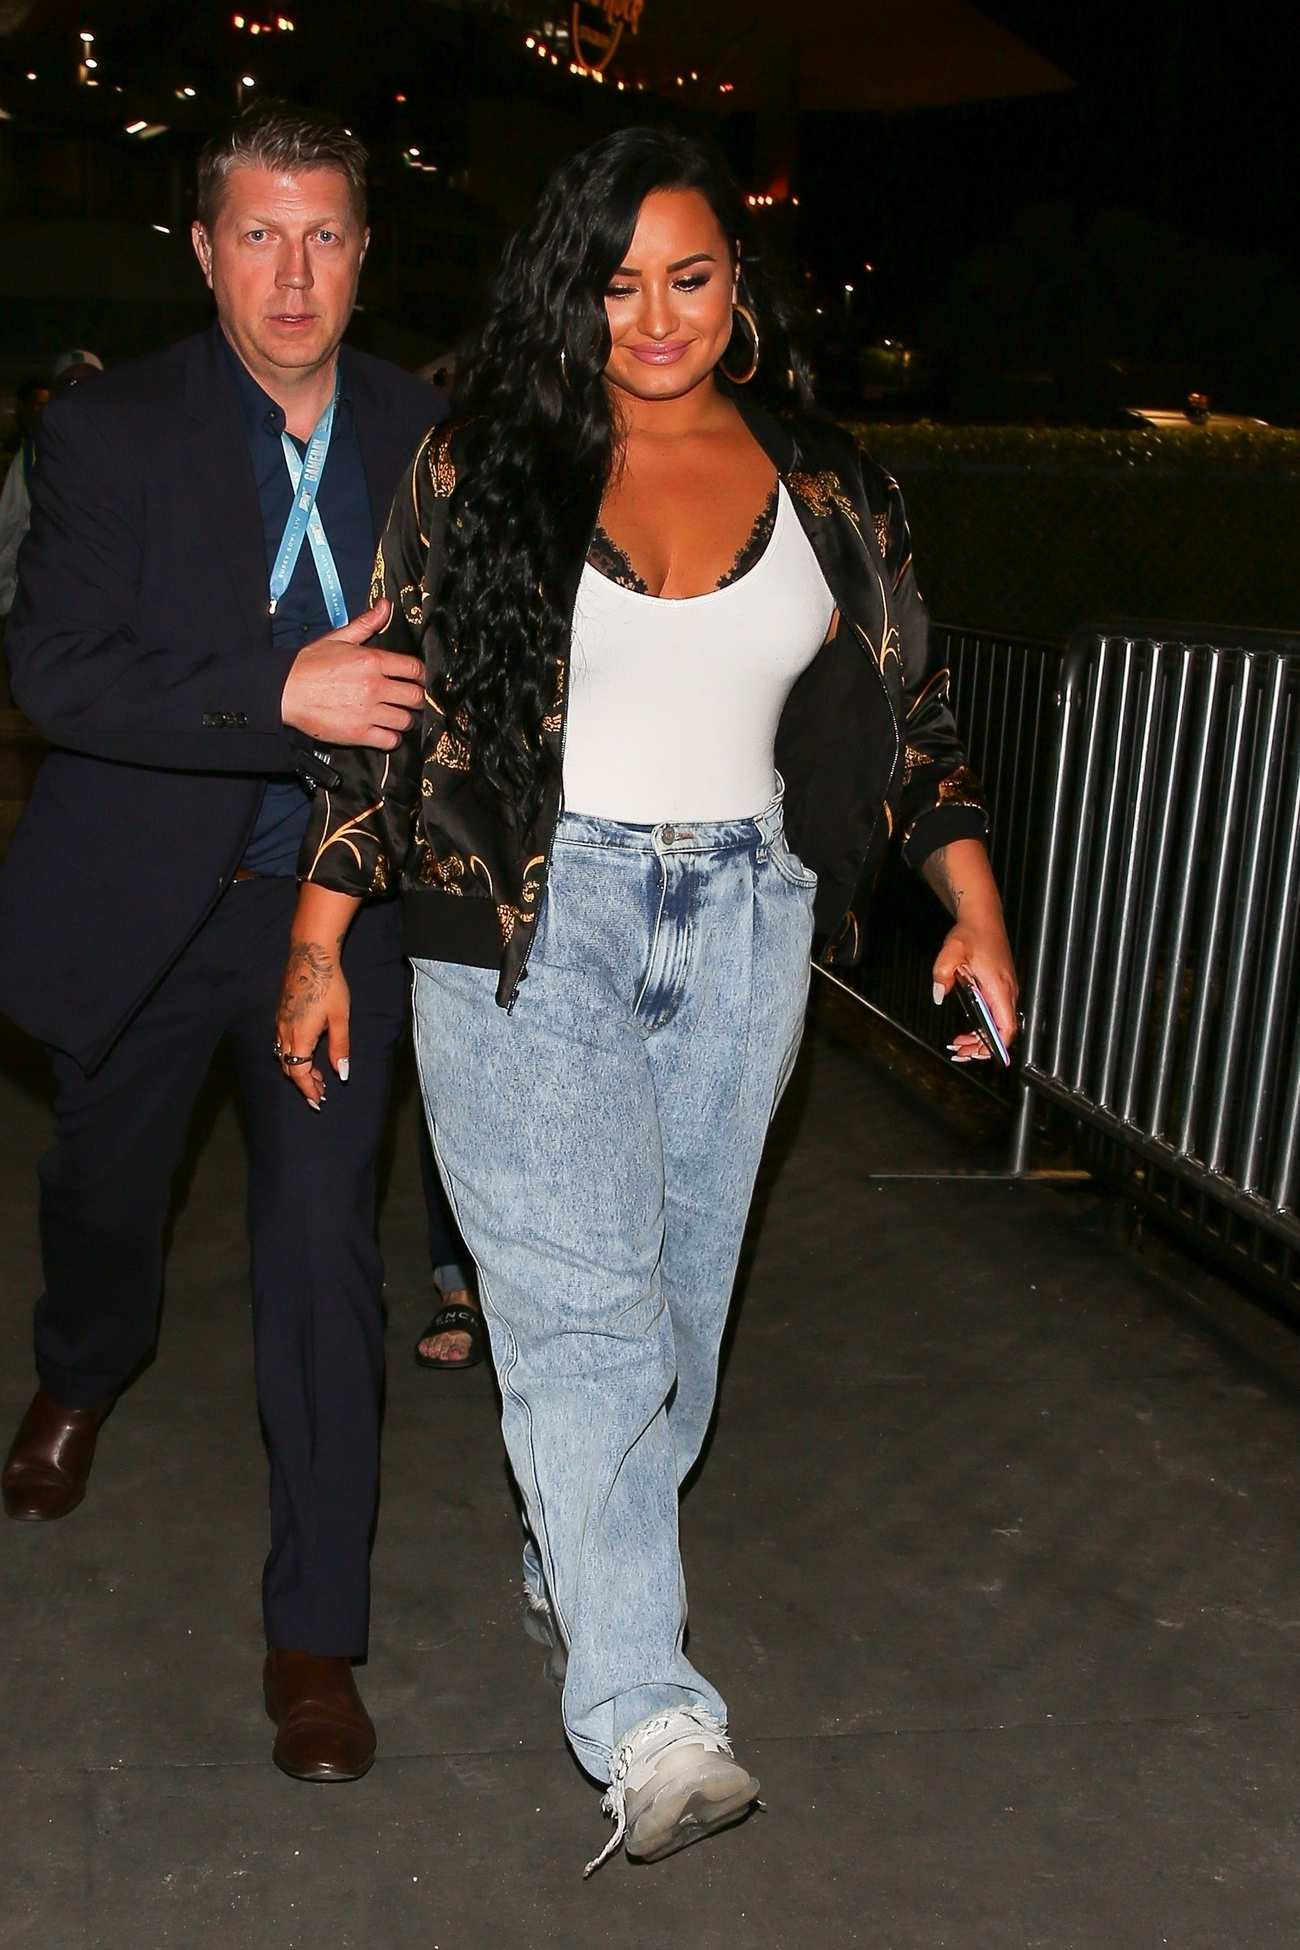 Demi_Lovato_-_After_her_performance_at_the_Super_Bowl_in_Miami2C_FL__02022020-05.jpg